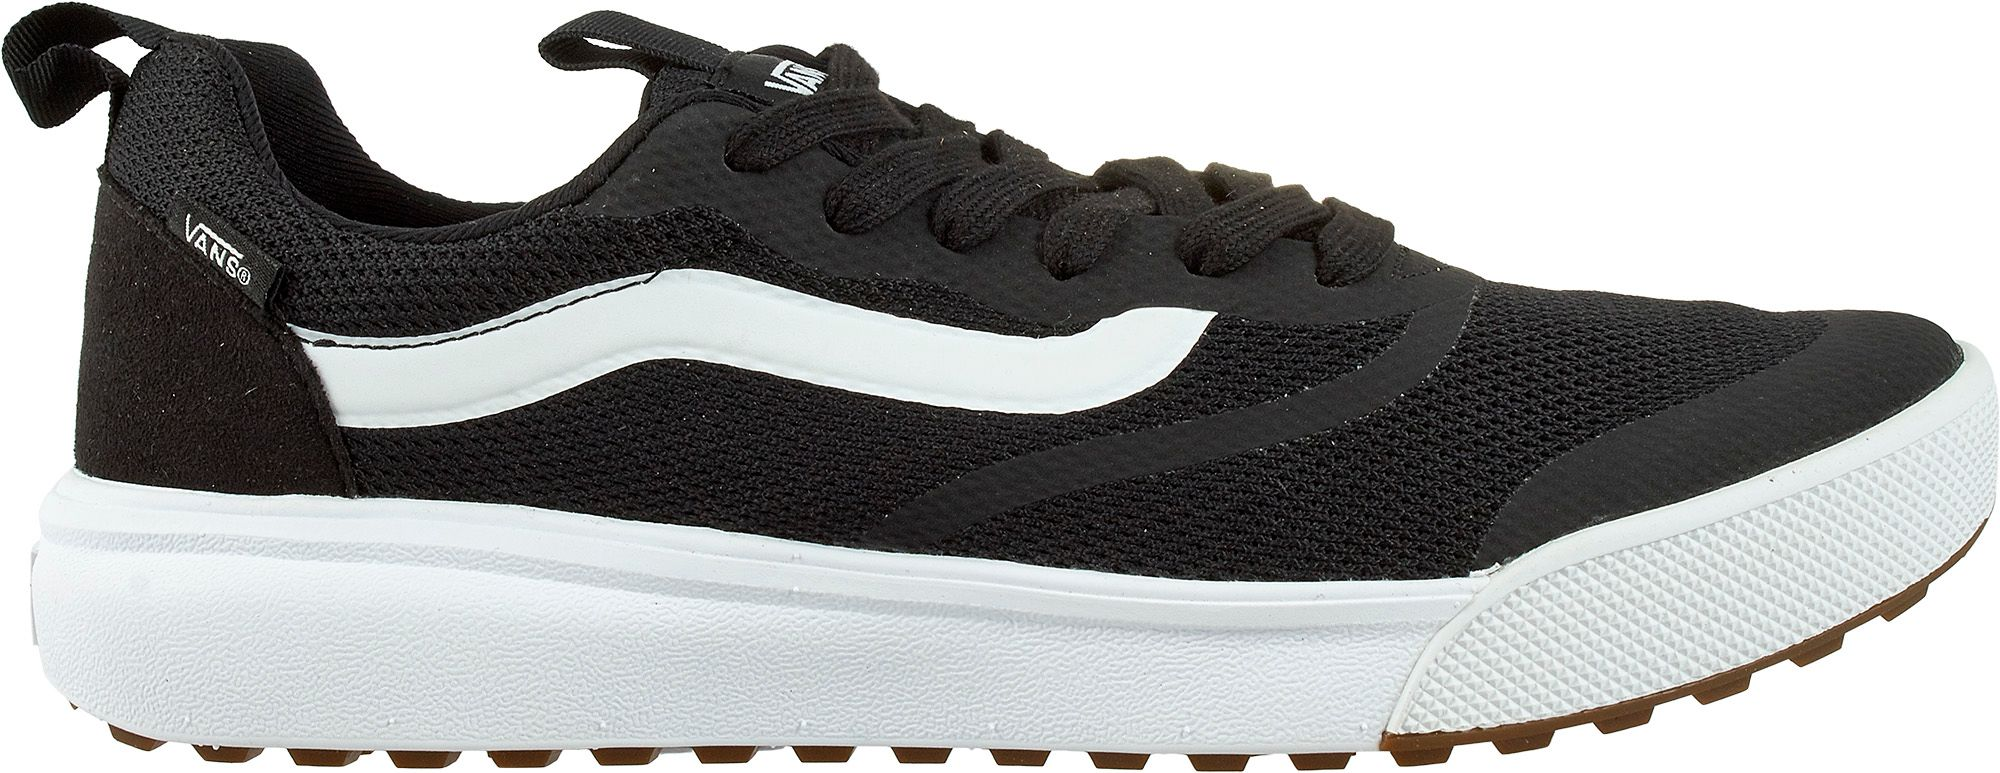 vans running shoes black